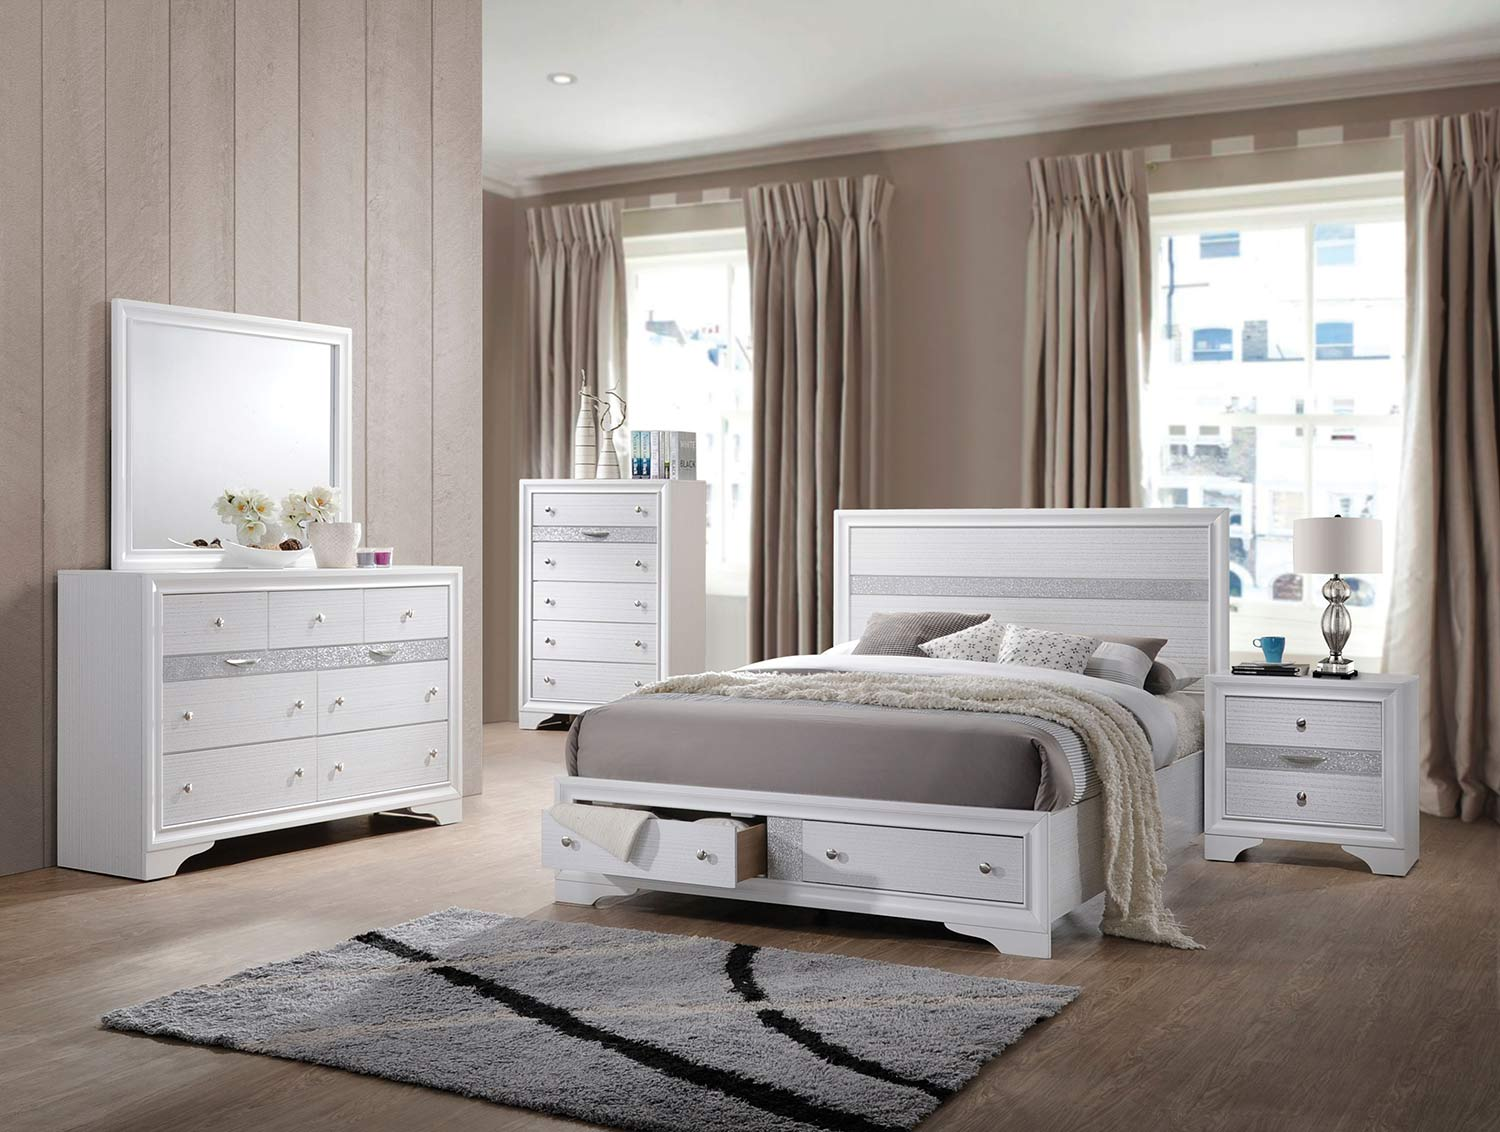 Acme Naima Bedroom Set with Storage - White